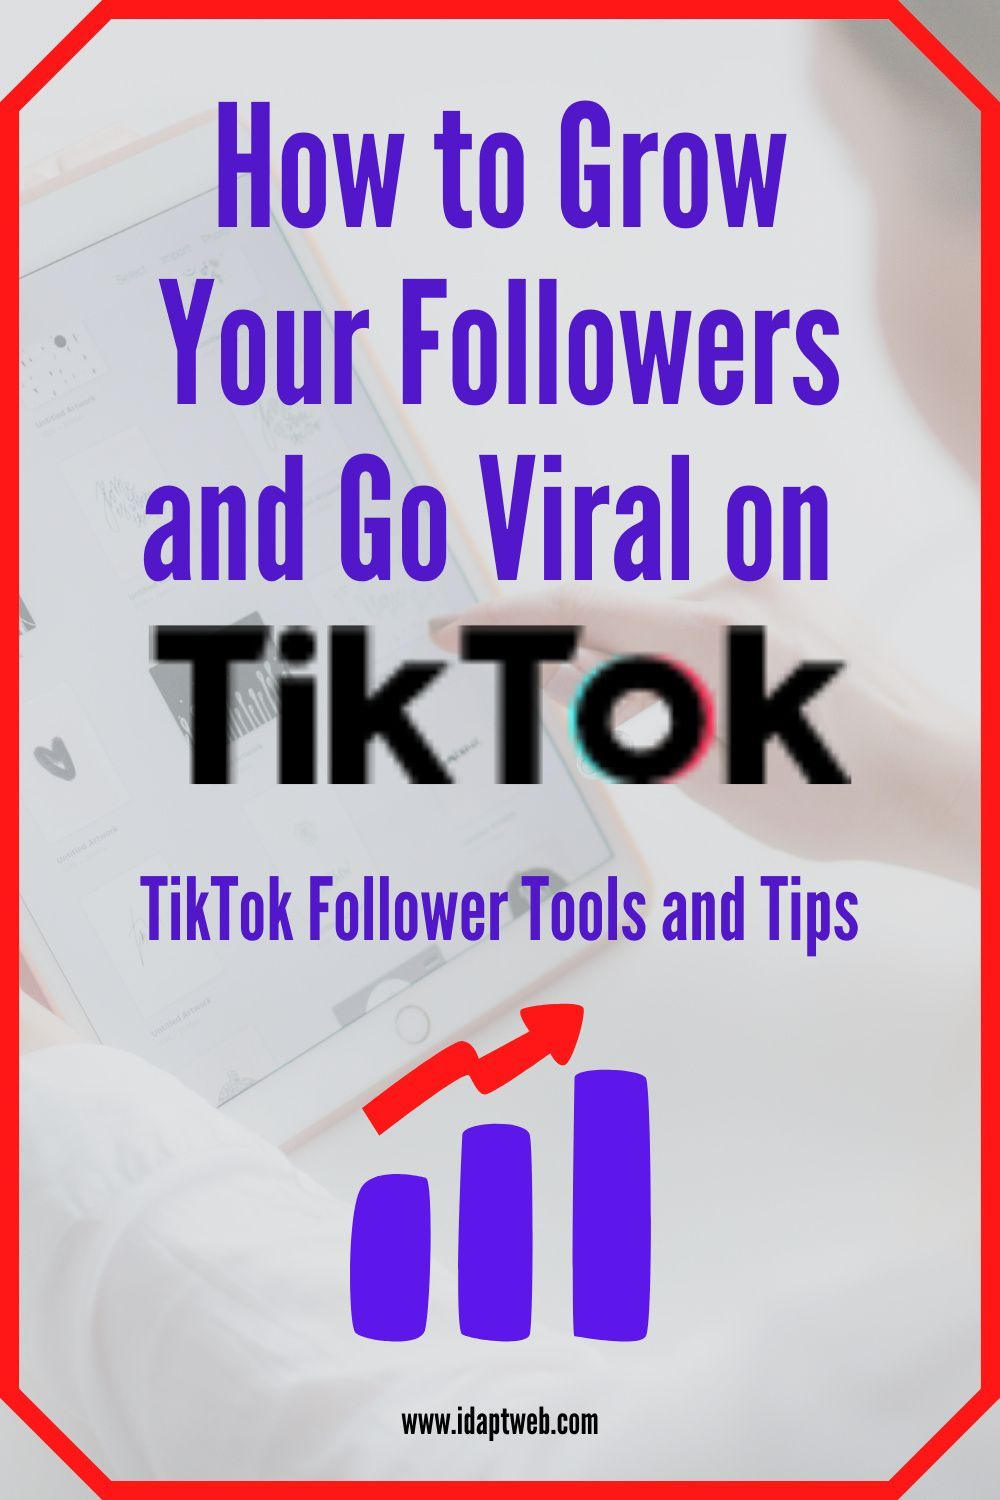 How To Get Followers On Tiktok In 2020 Tiktok Follower Tools And Tips Social Media Infographic Social Media Tool How To Get Followers